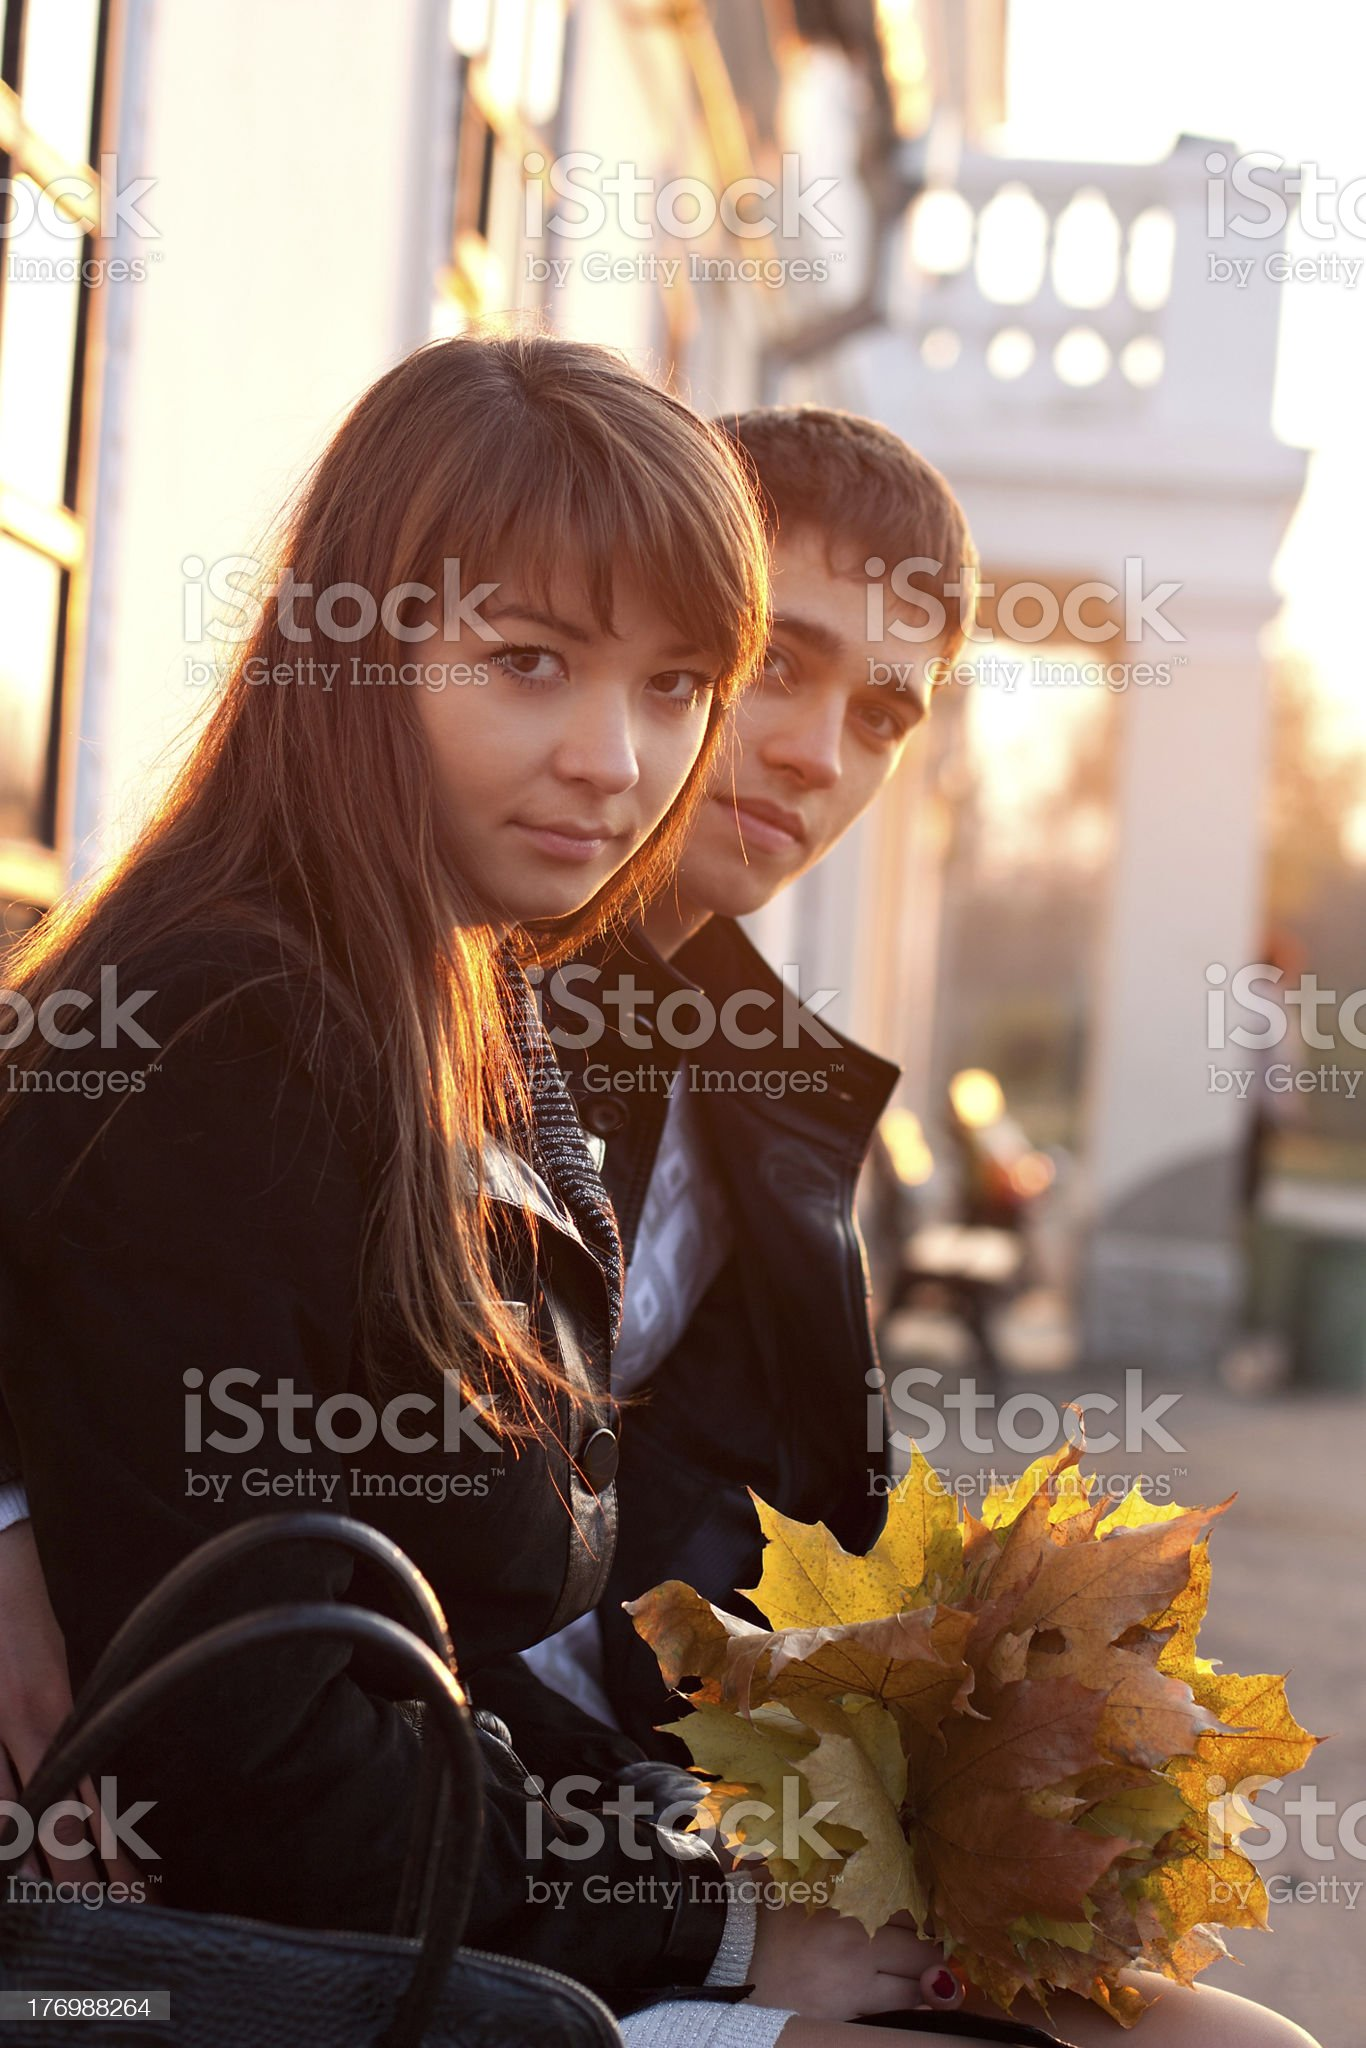 Young Beautiful Couple in Love Outdoor Backlit royalty-free stock photo